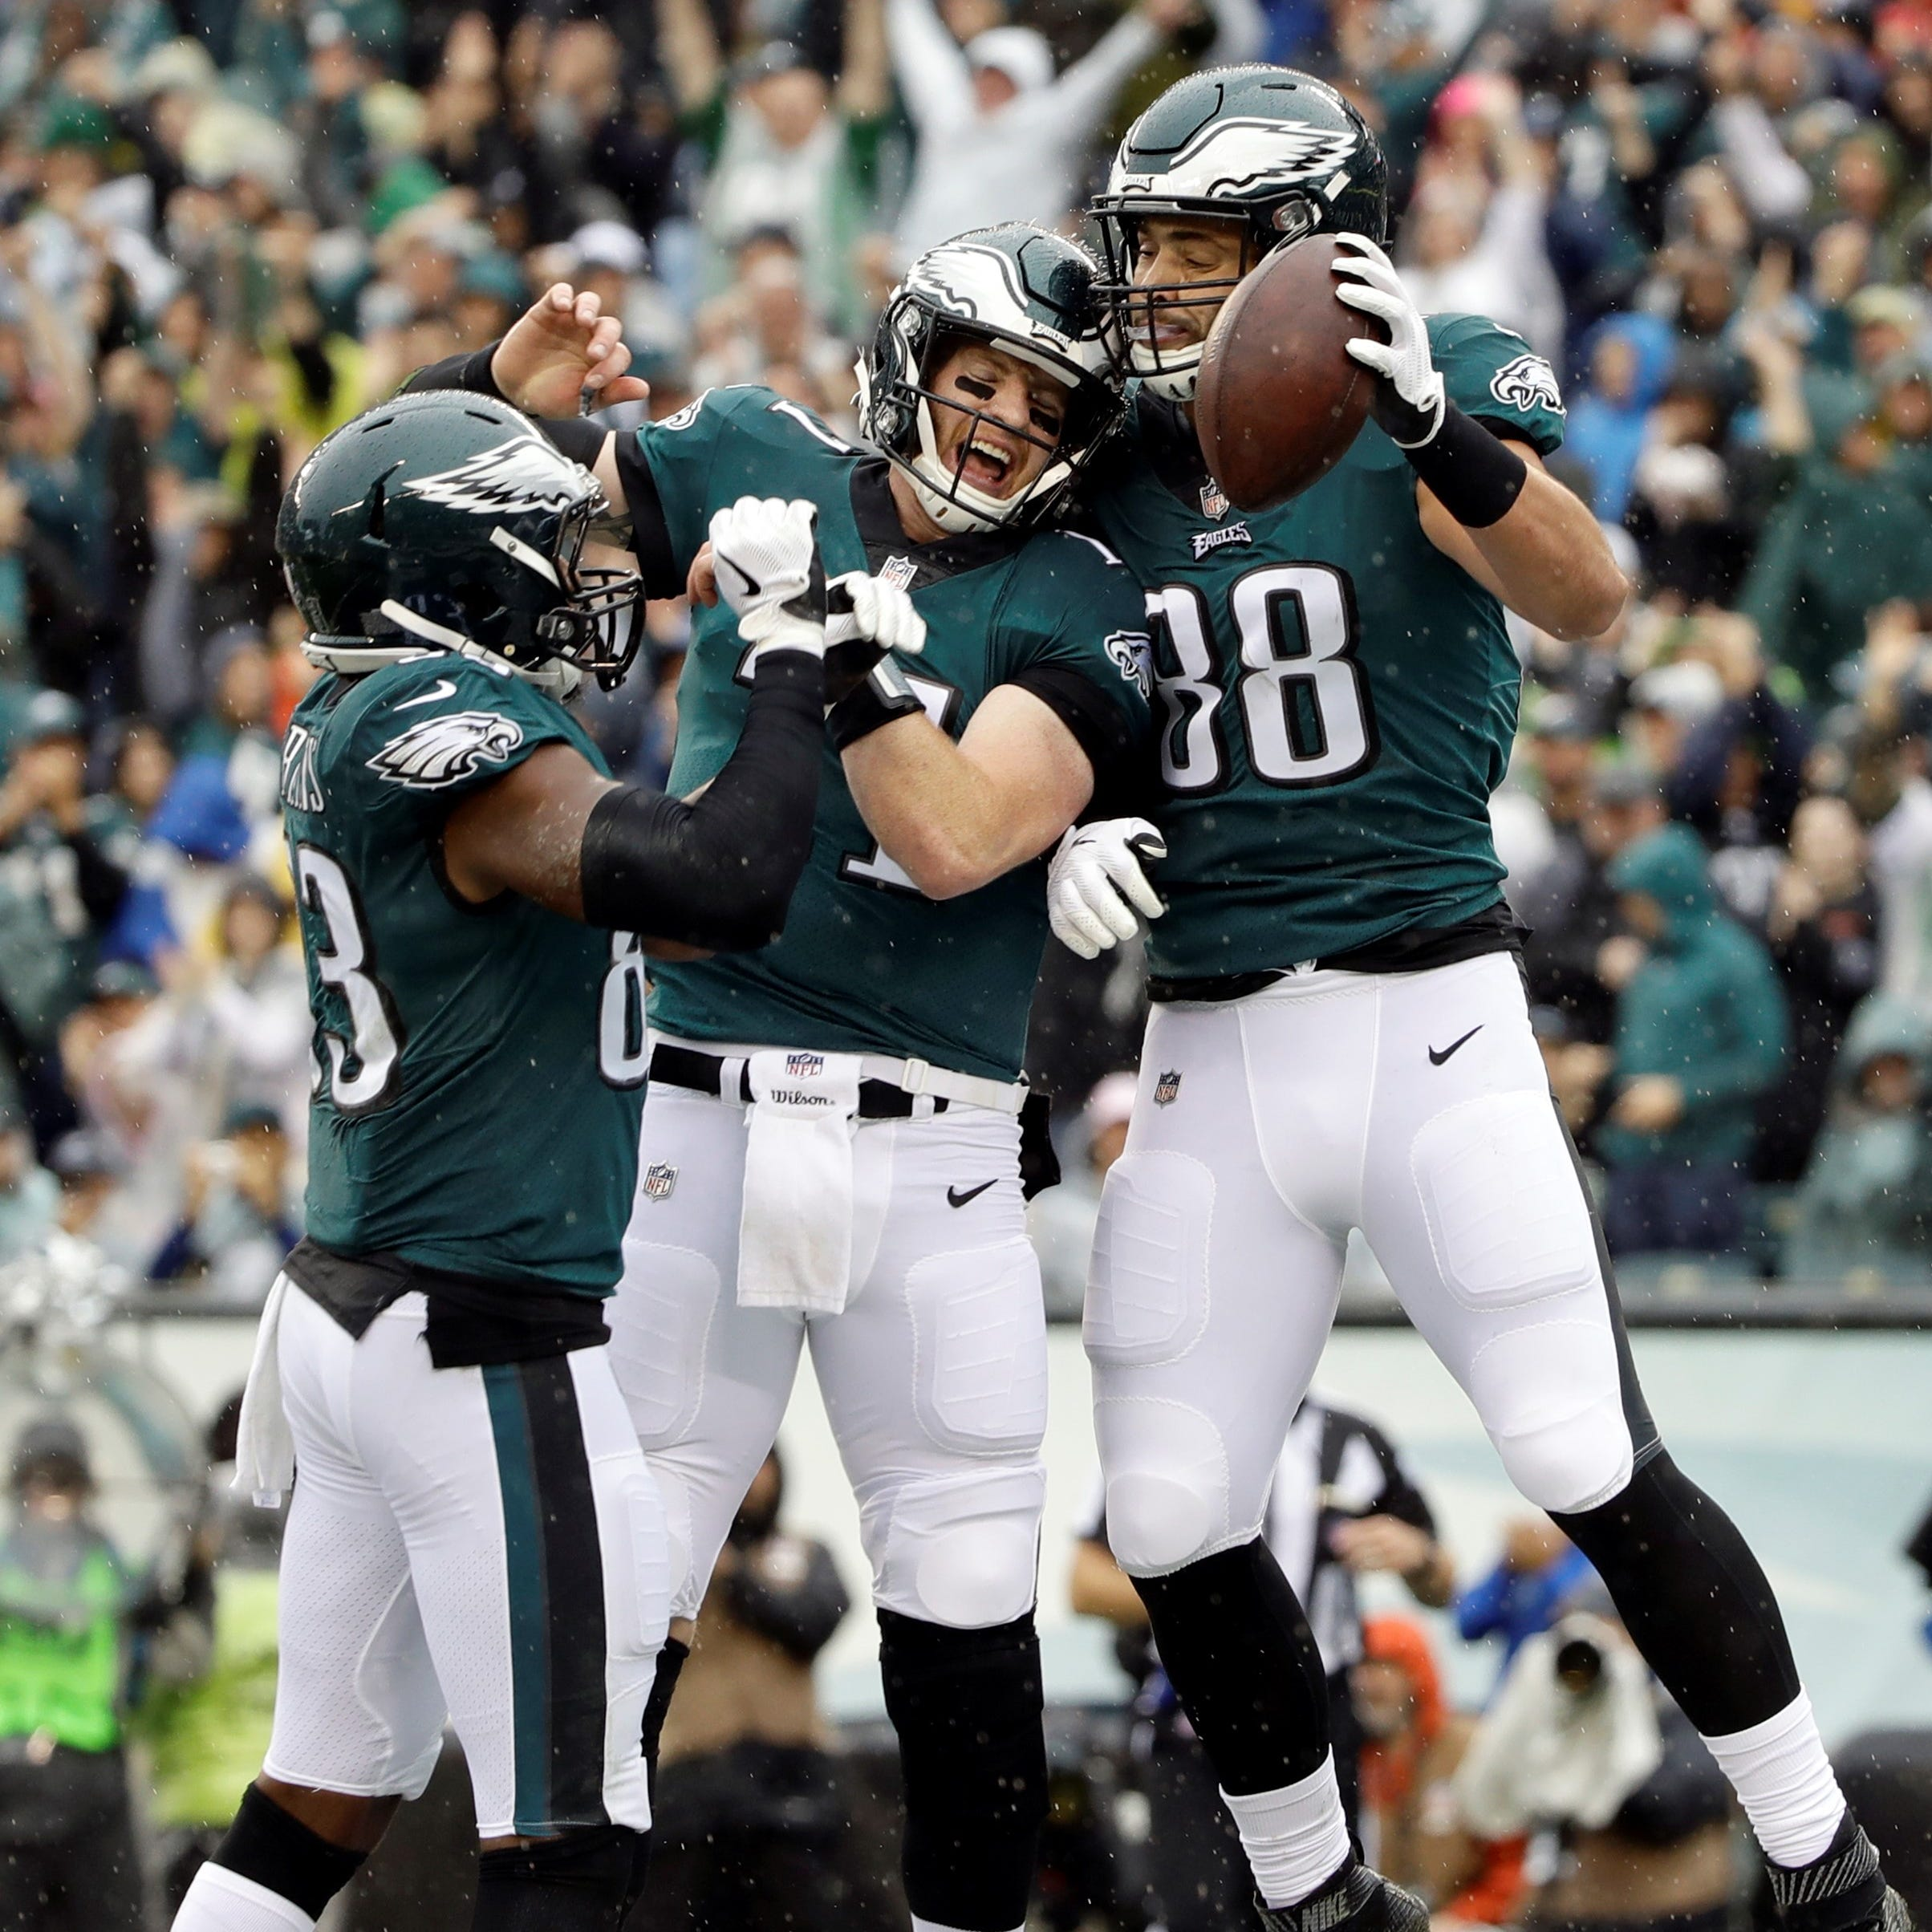 Carson Wentz, in his return to Eagles, leads Philadelphia to 20-16 comeback win over Colts